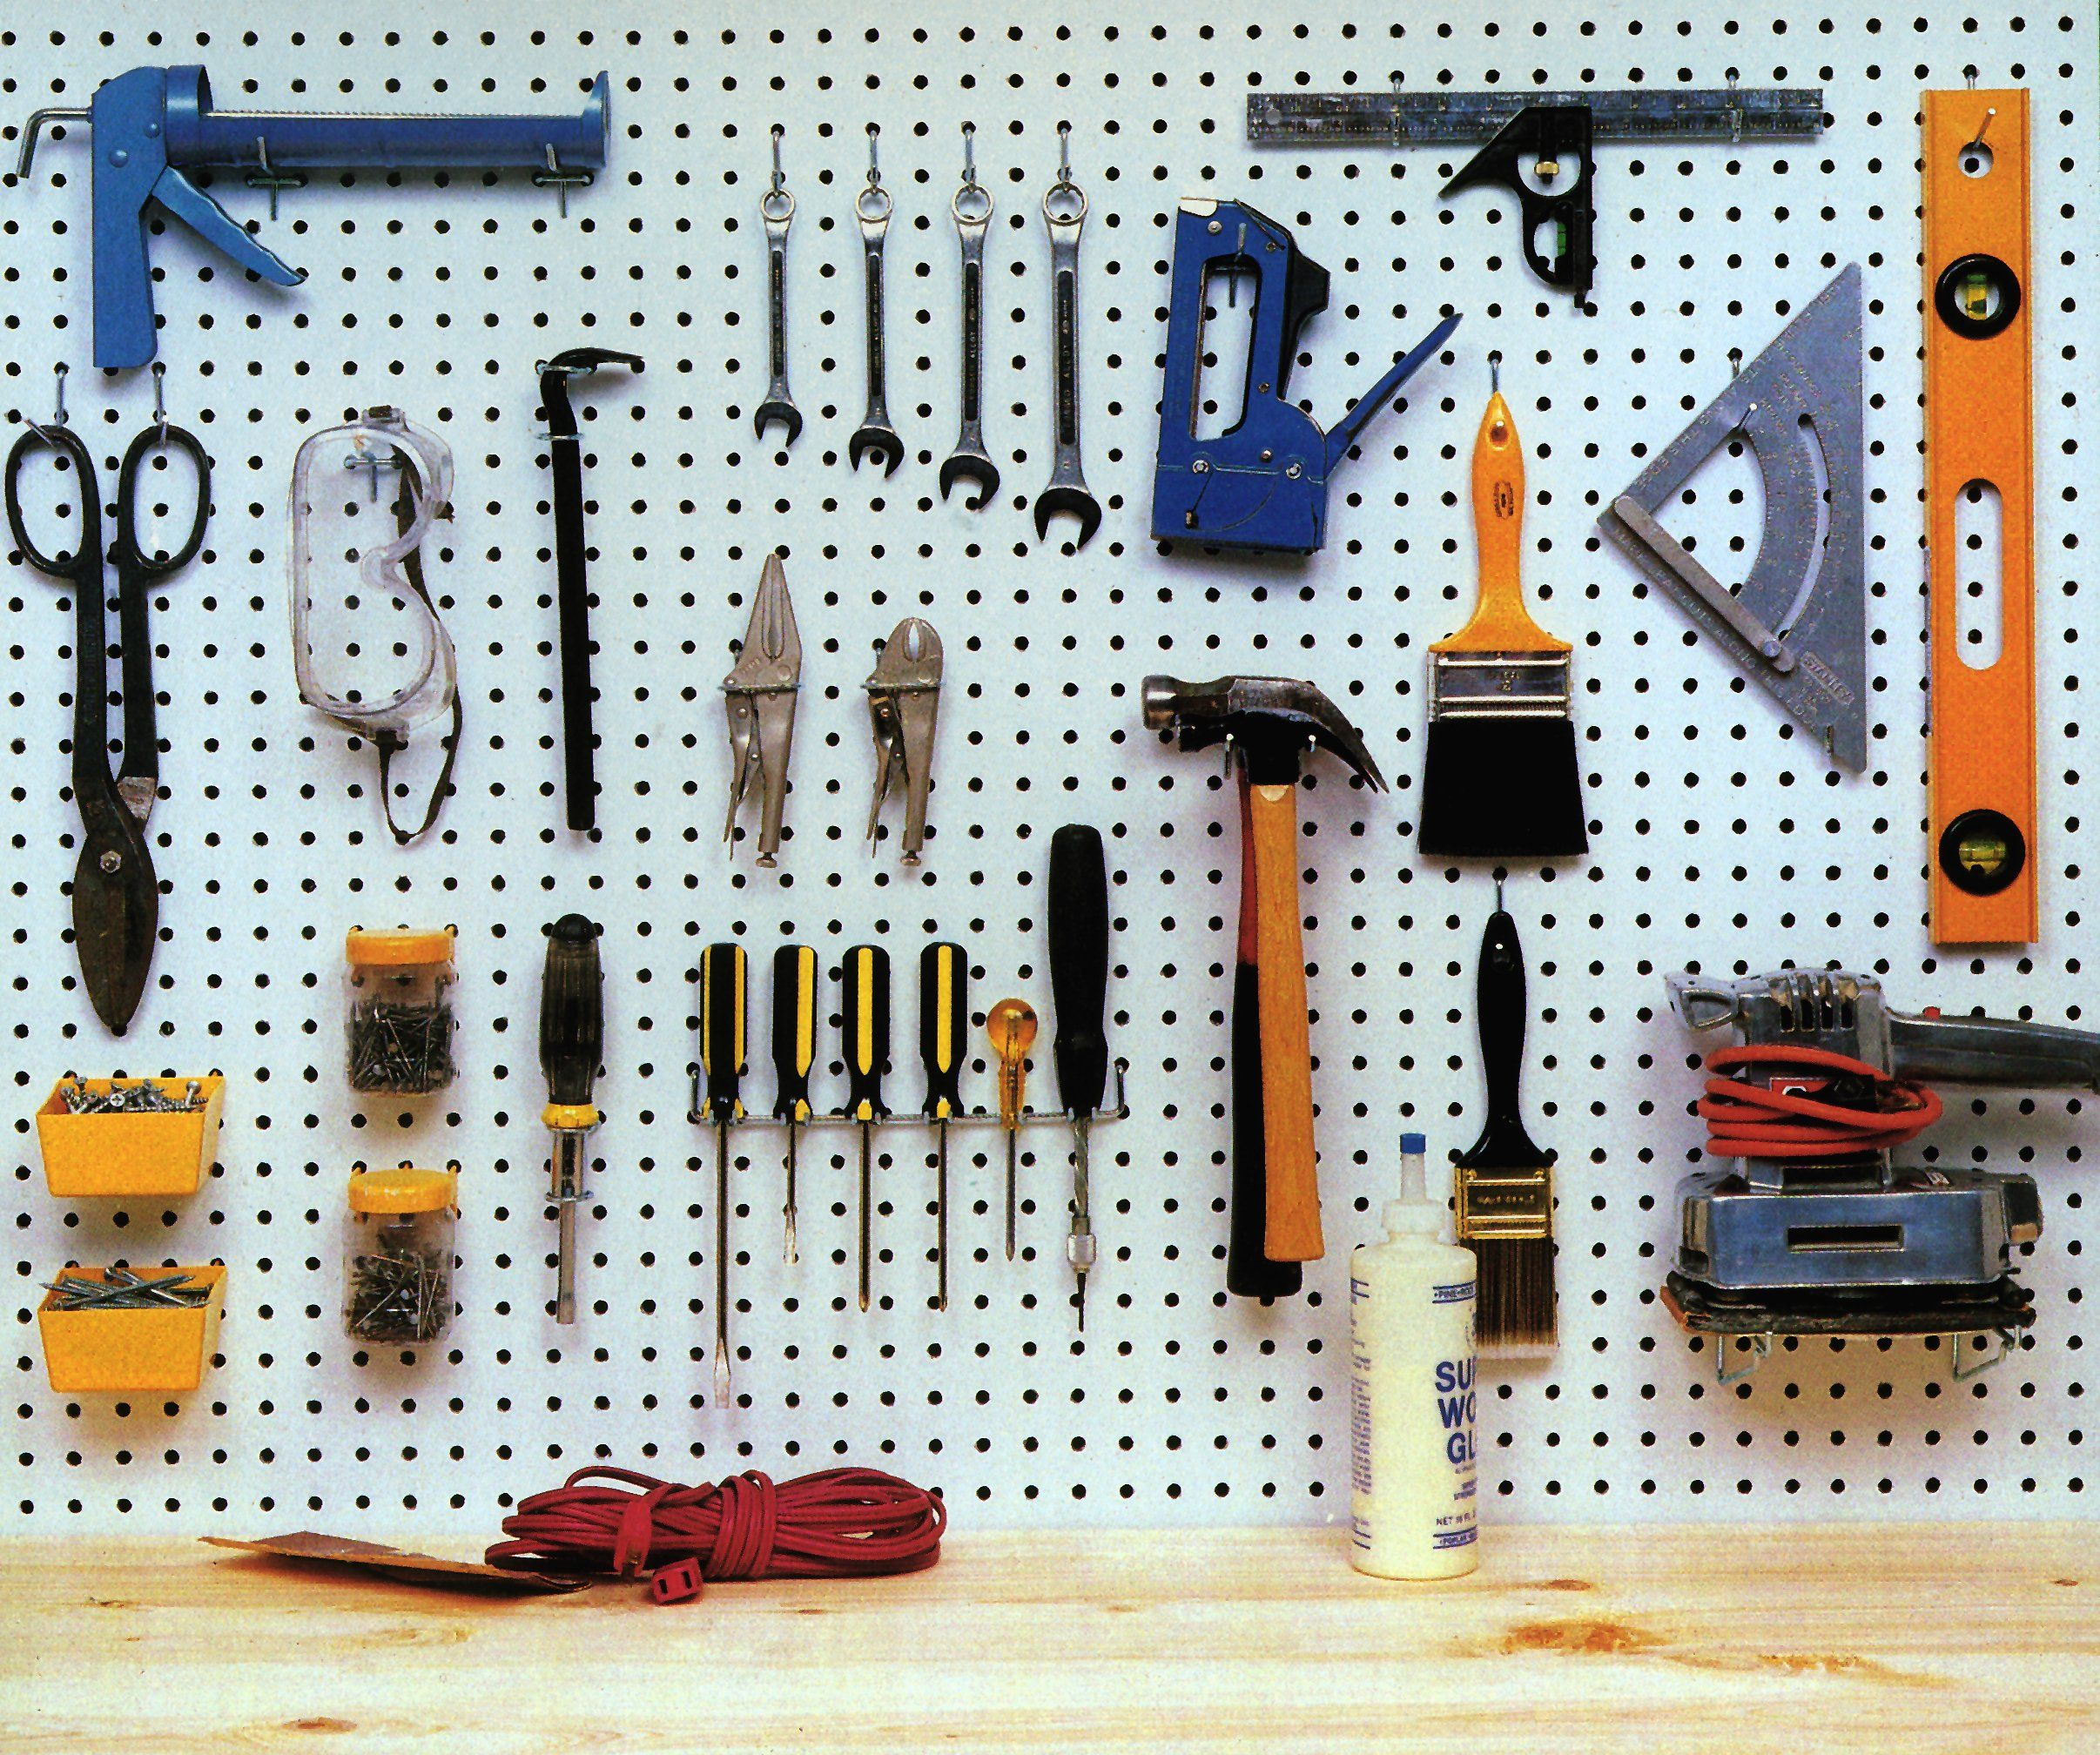 pegboard ideas for garage pegboard ideas for kitchen pegboard ideas for tools  pegboard ideas for laundry room pegboard ideas for classroom pegboard ideas  ...